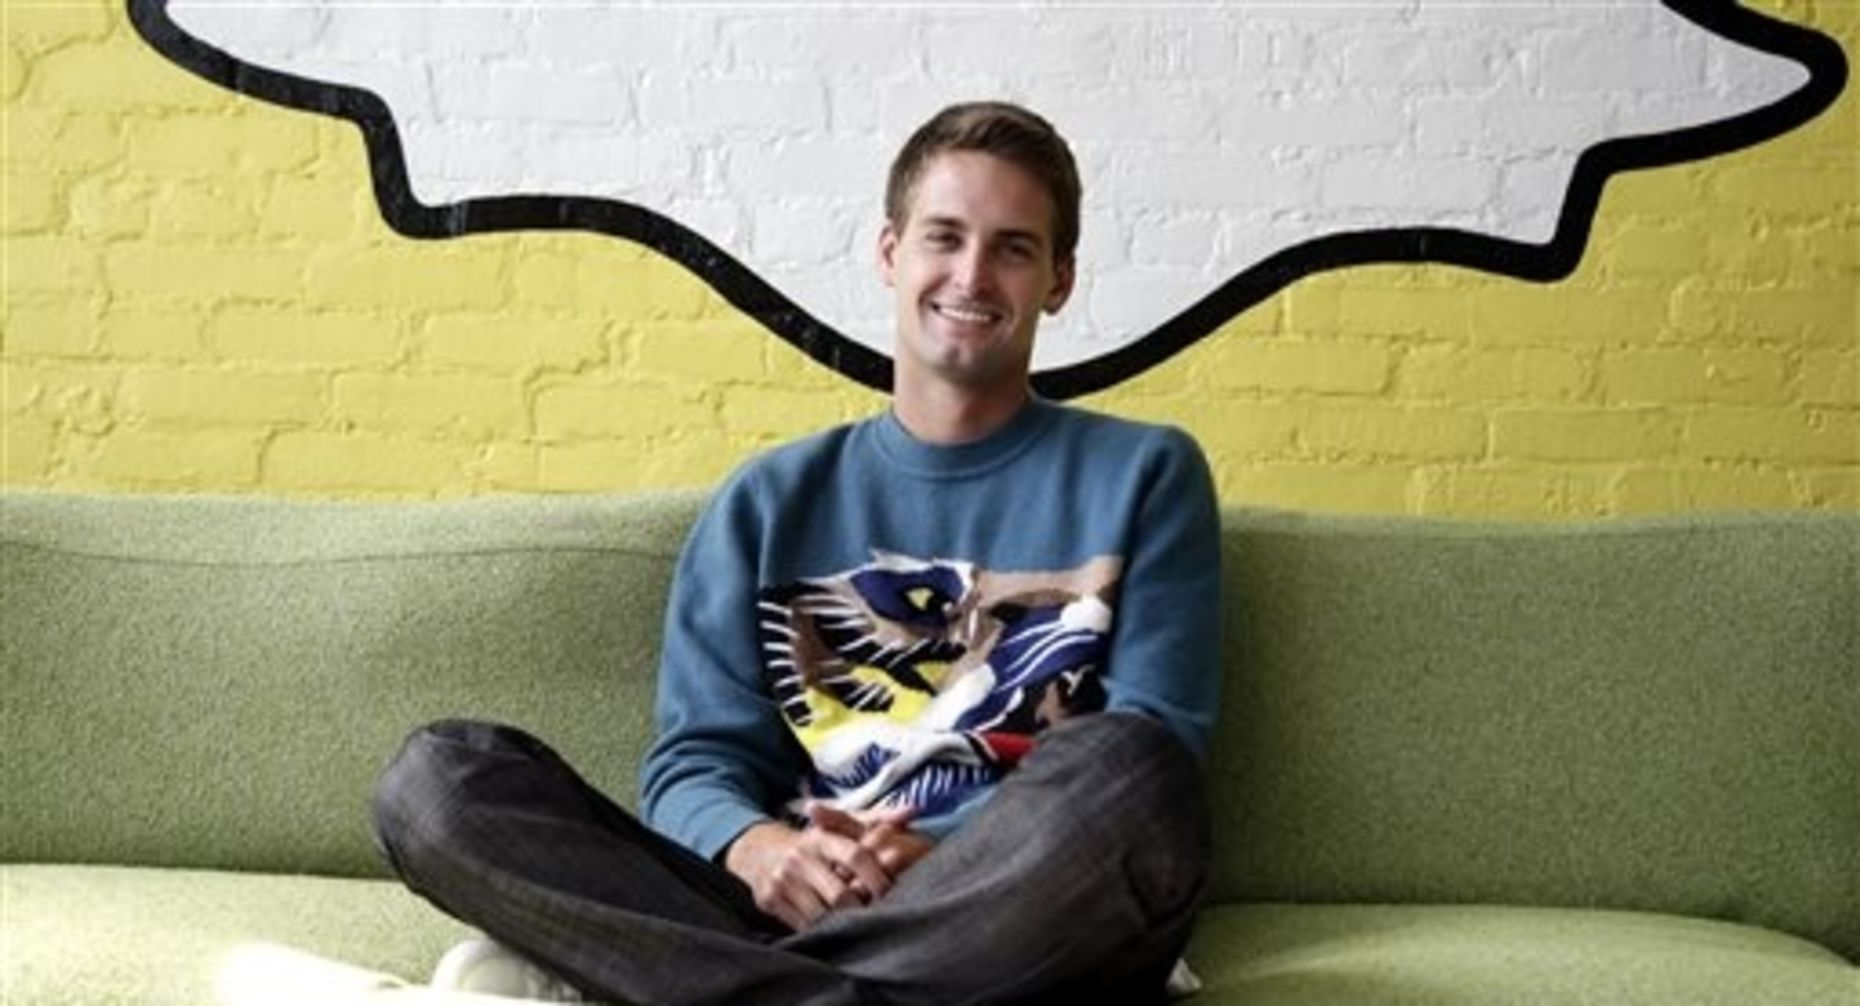 Snapchat CEO Evan Spiegel. Photo by Associated Press.